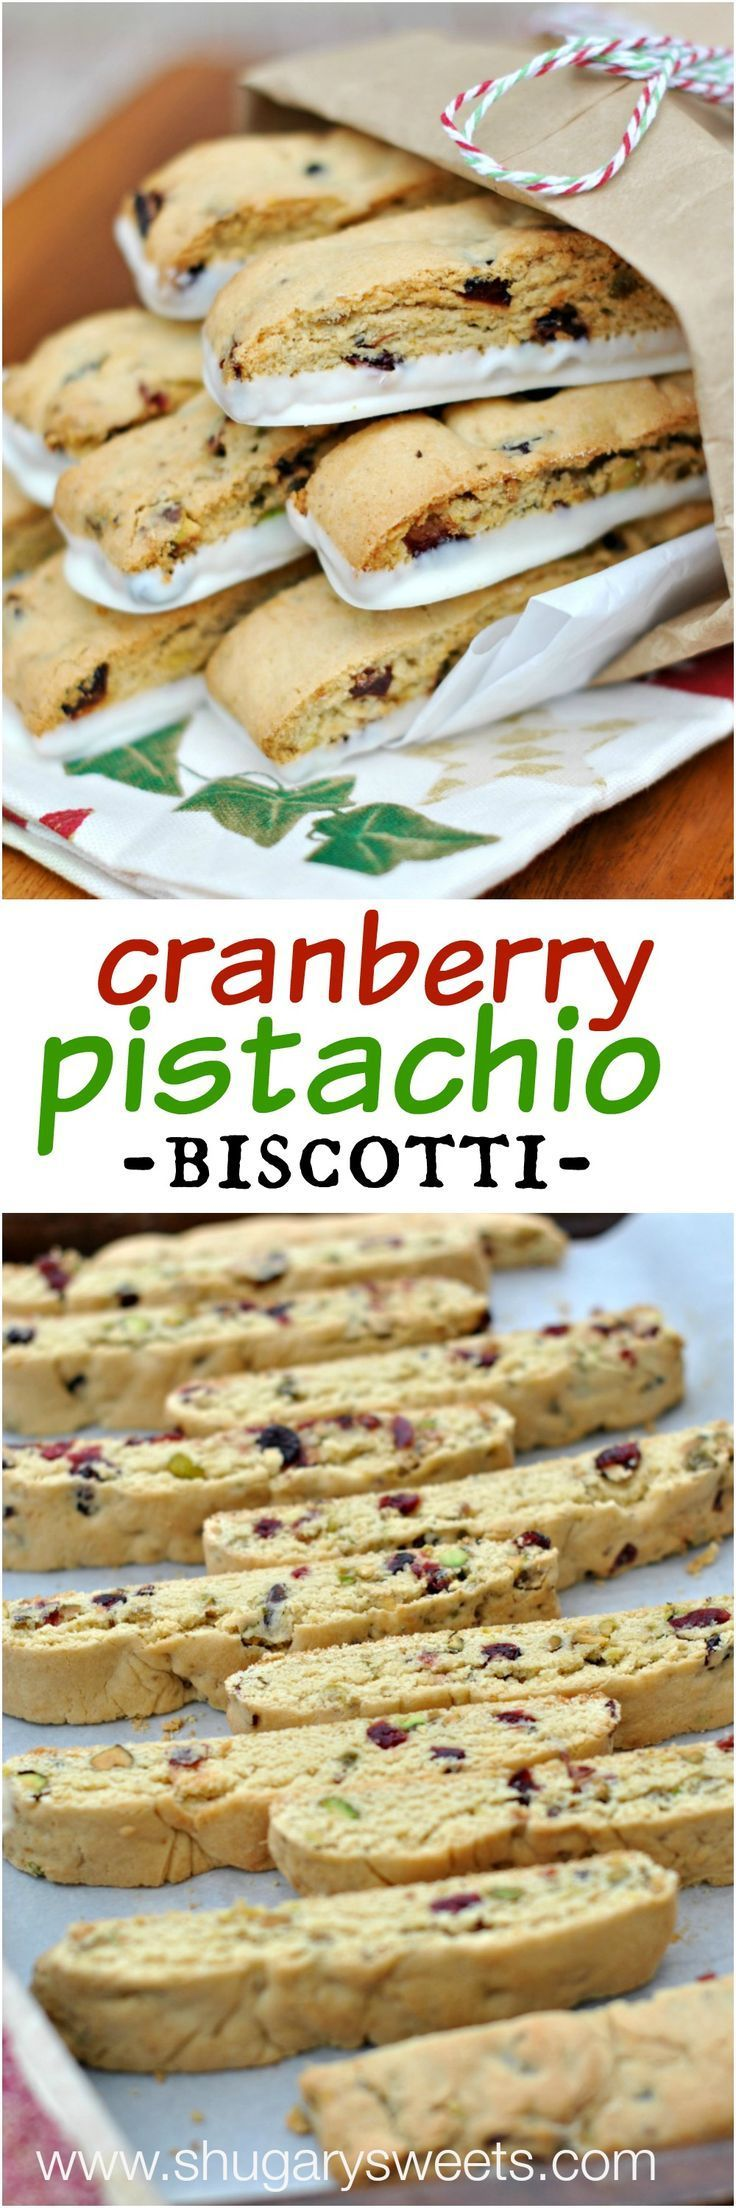 Cranberry Pistachio Biscotti recipe is easy to make and perfect for holidays!